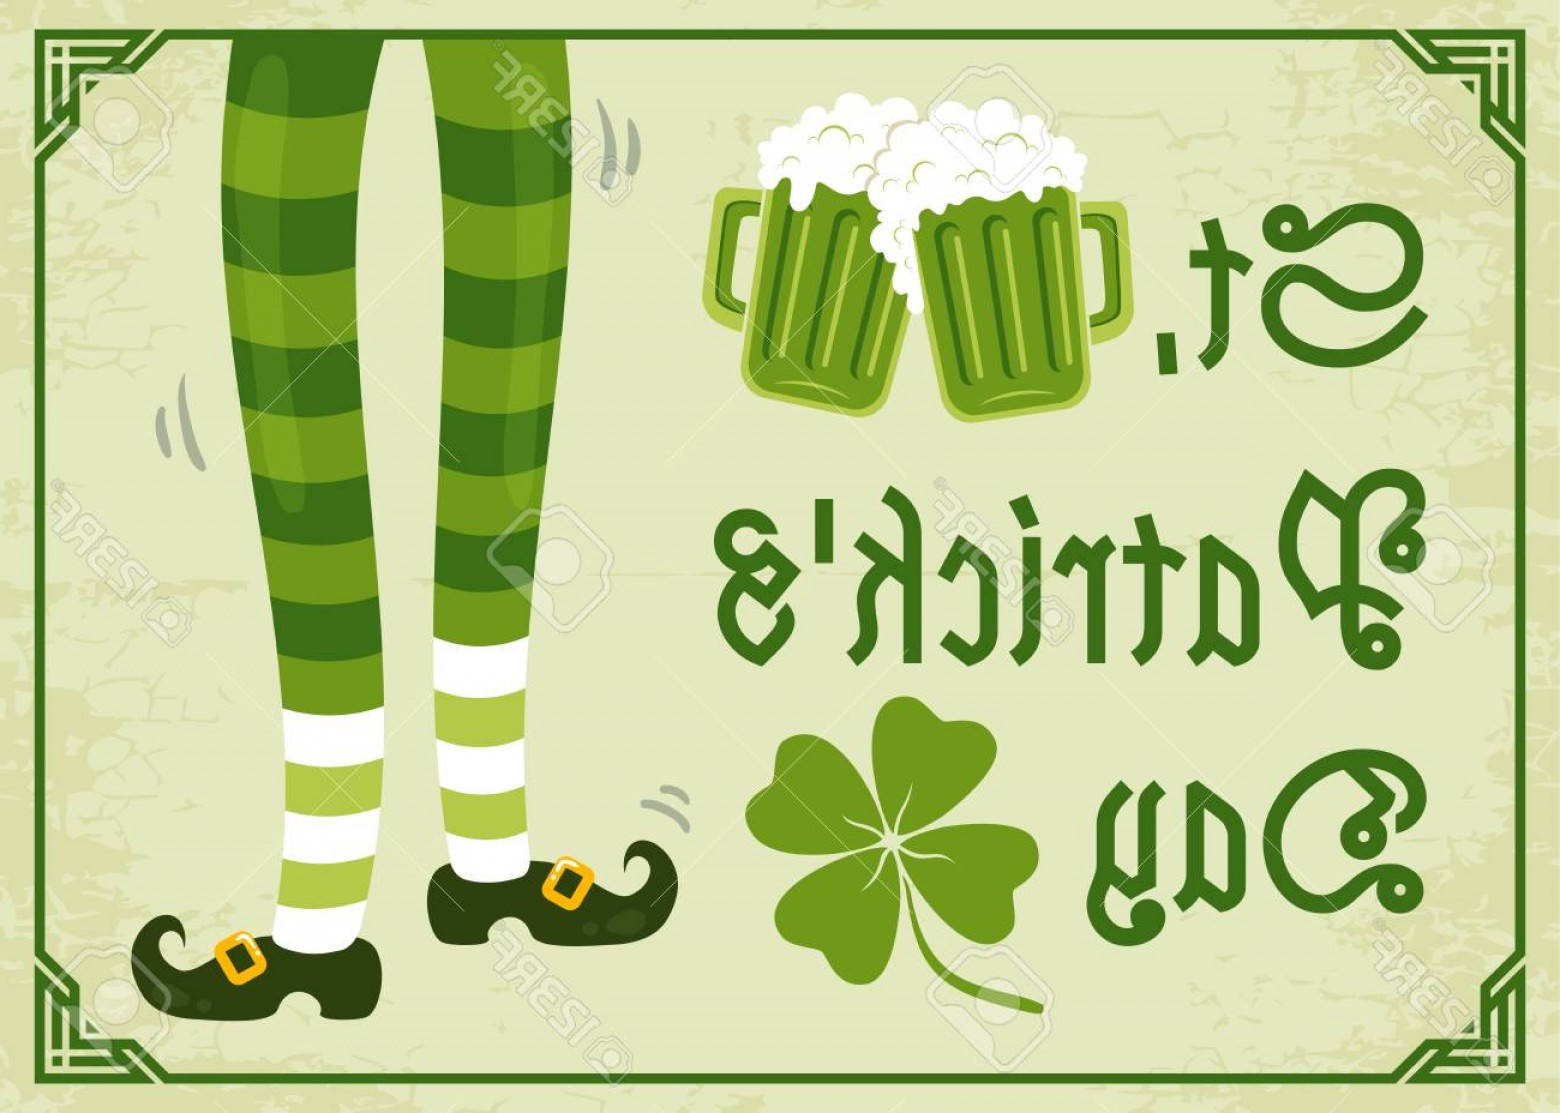 Shamrock Vector Art Vintage: Photostock Vector Vector Vintage Poster With Clover And Beer For Patrick S Day Green Clover Foots And Two Beer Mugs